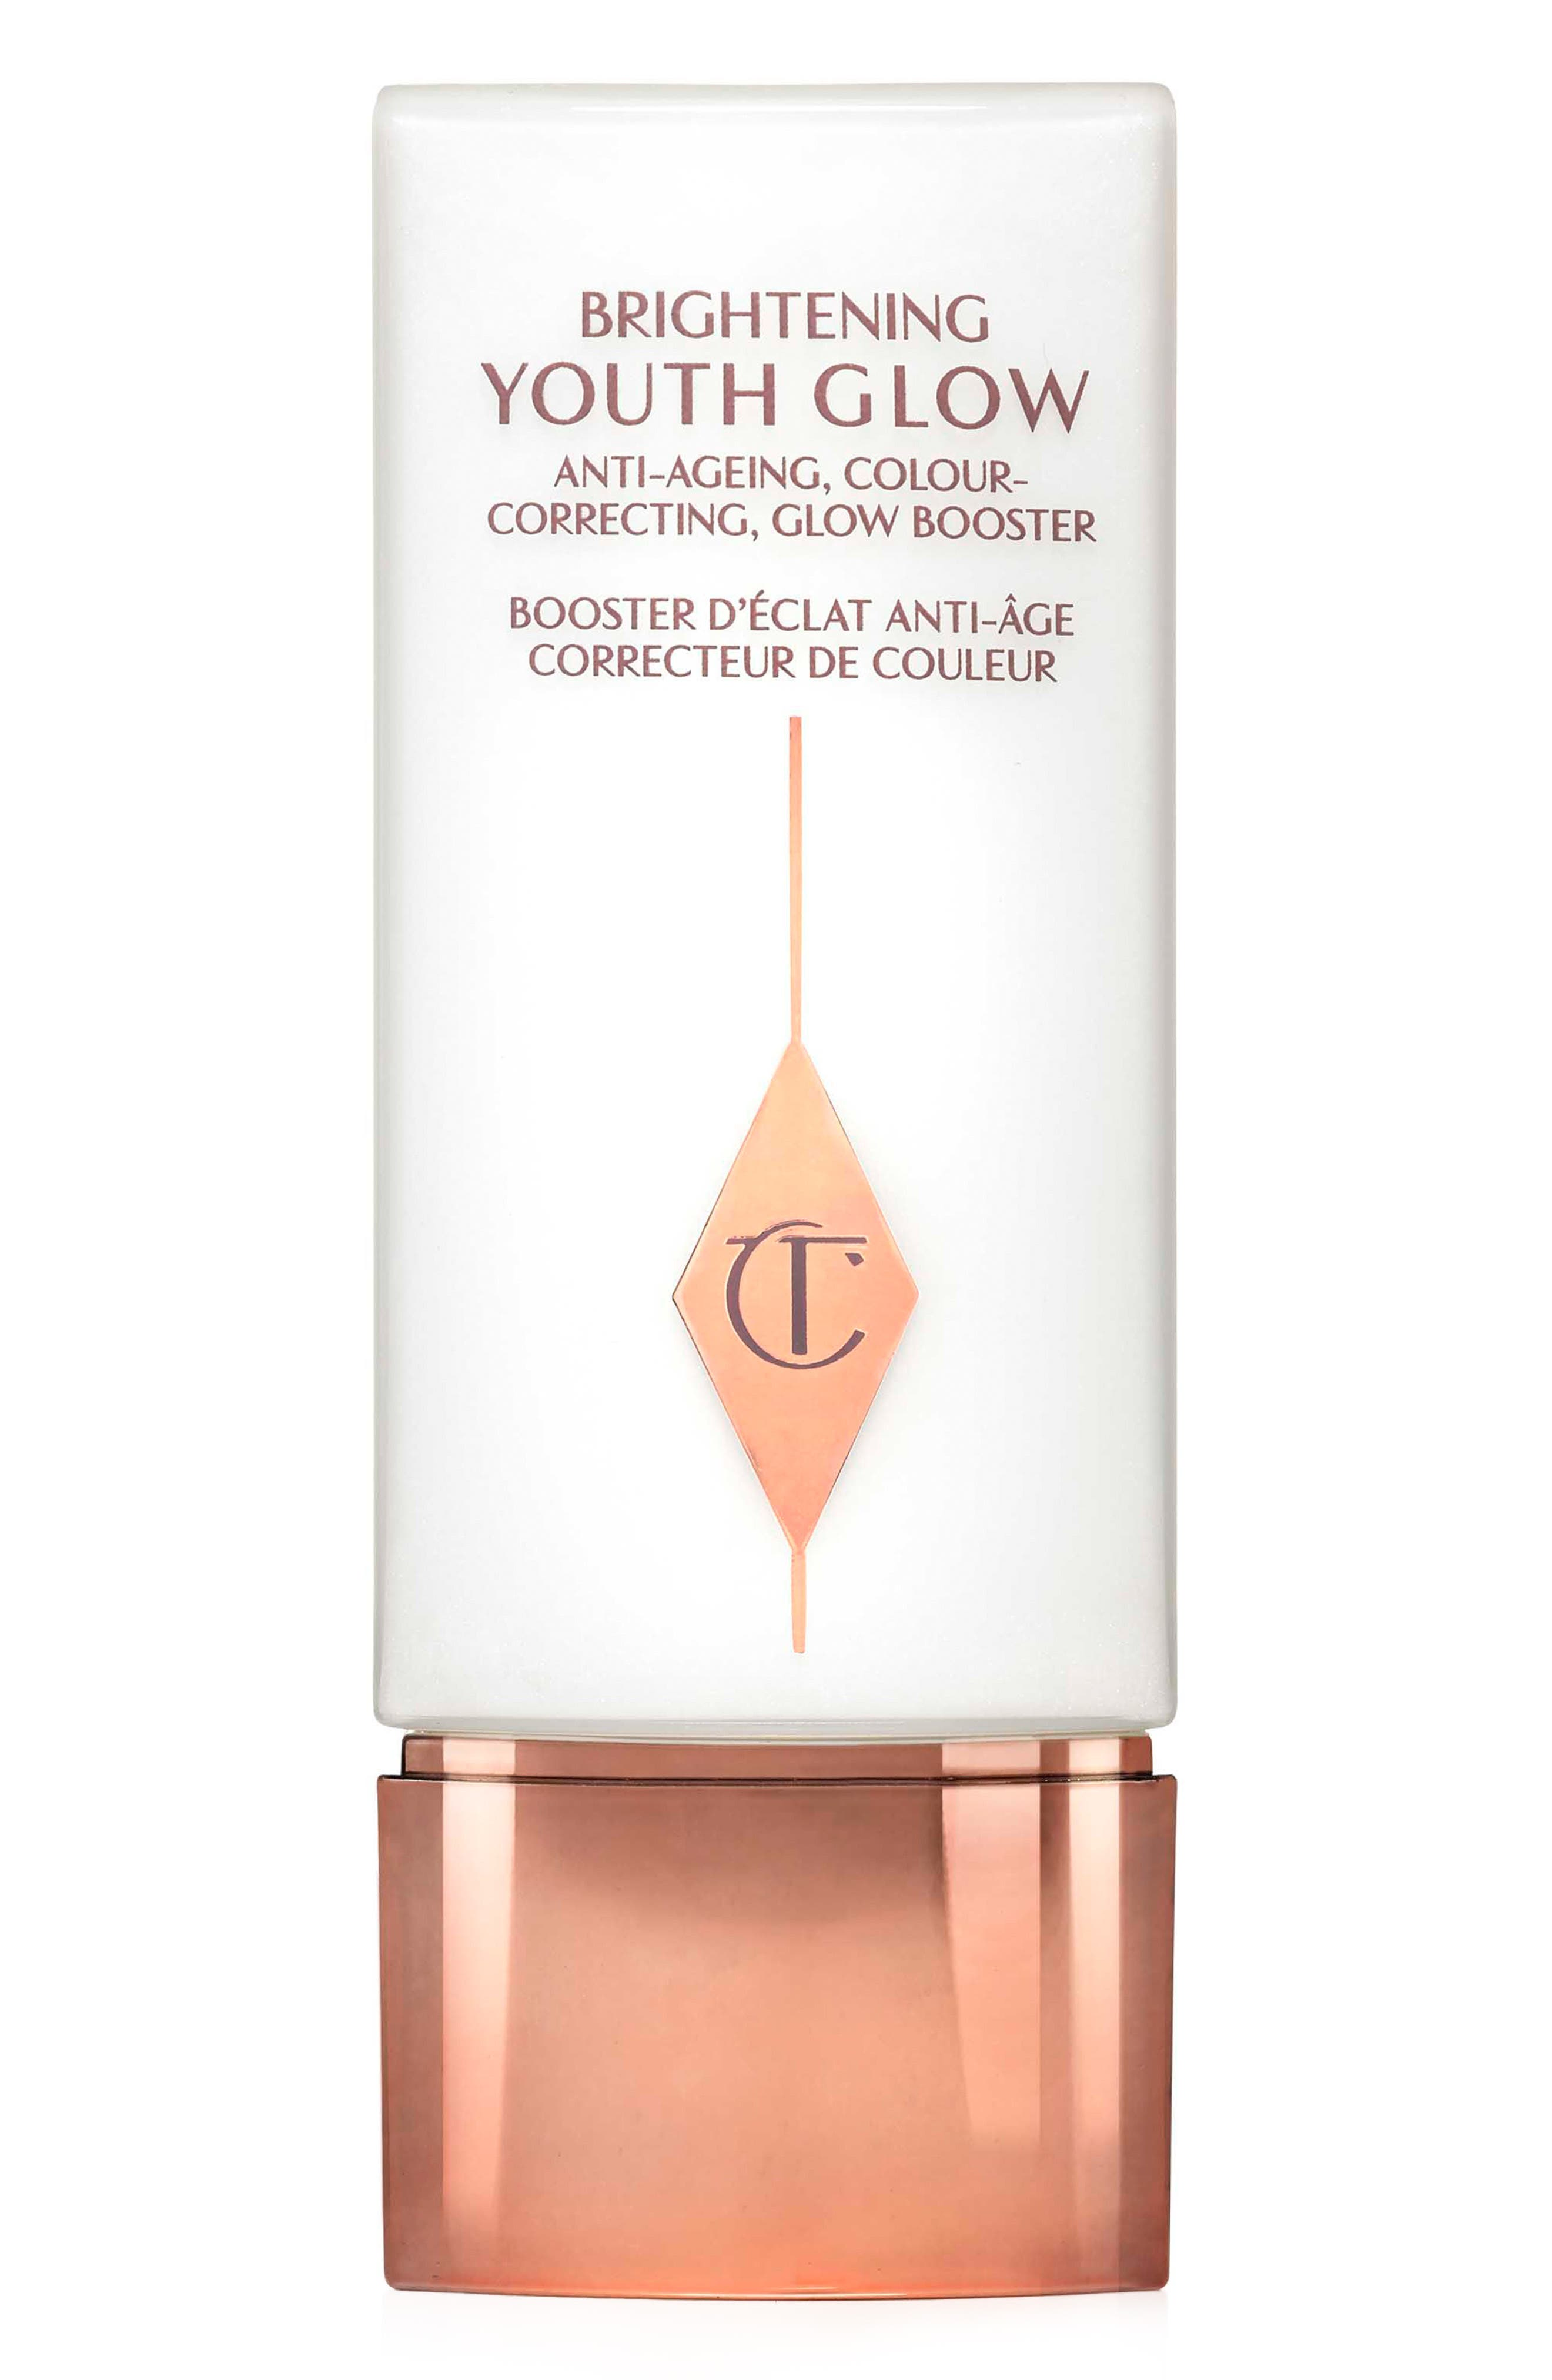 CHARLOTTE TILBURY, Brightening Youth Glow Primer, Main thumbnail 1, color, NO COLOR